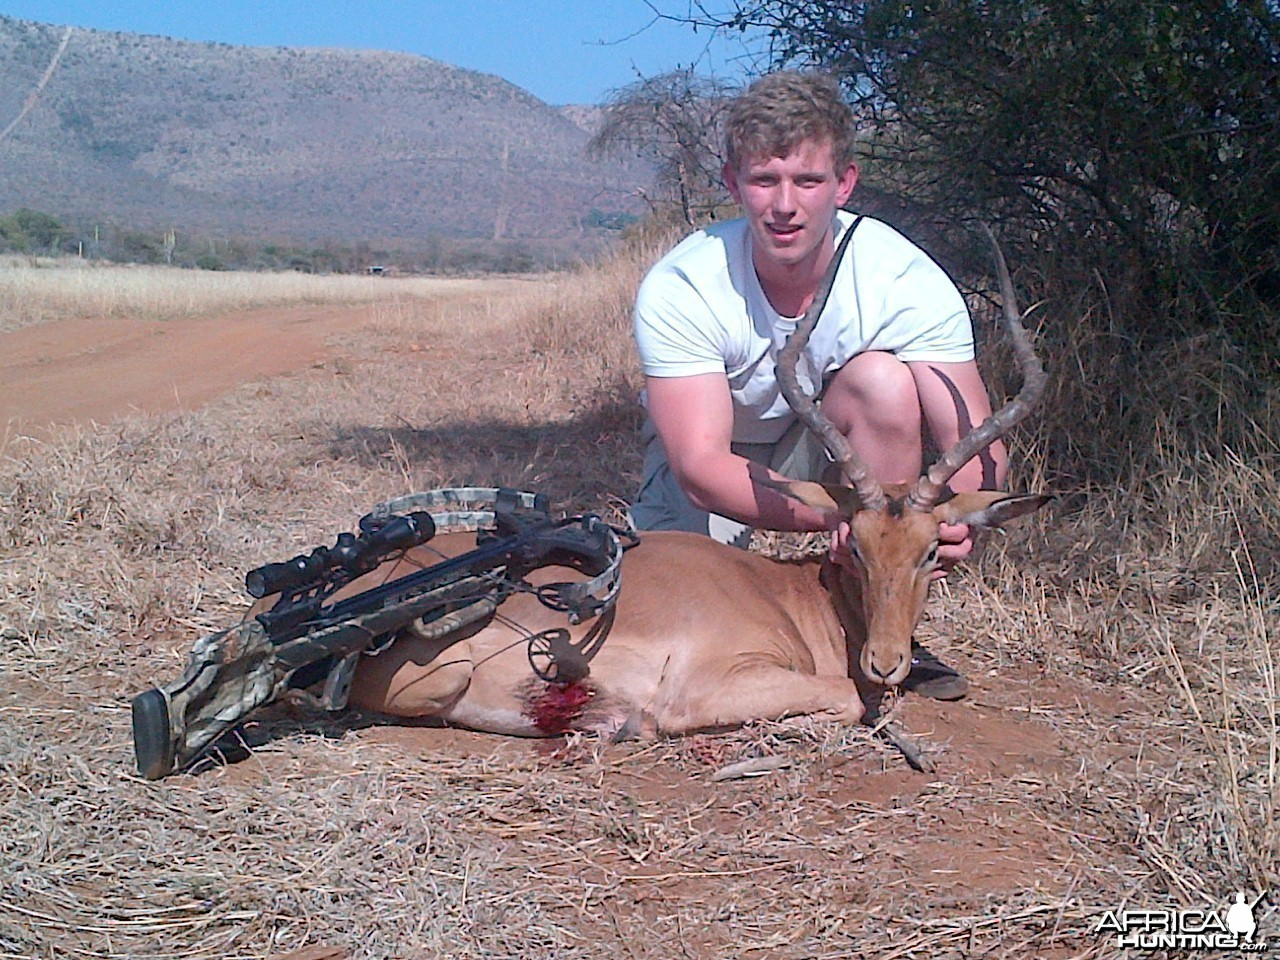 25 inch rowland ward impala taken with crossbow